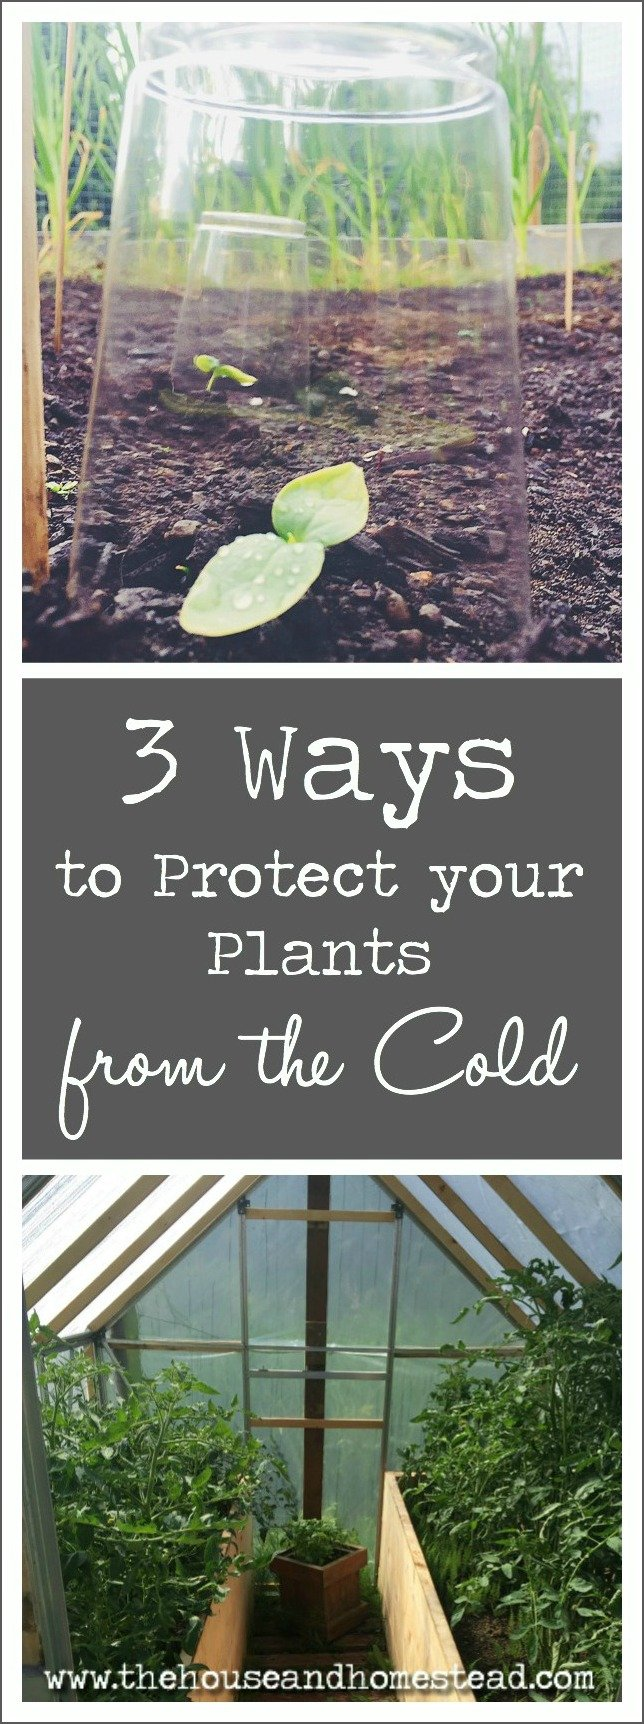 3 Ways to Protect Your Plants from the Cold | Shelter and protect your plants from the cold with these 3 ideas for keeping plants and seedlings warm